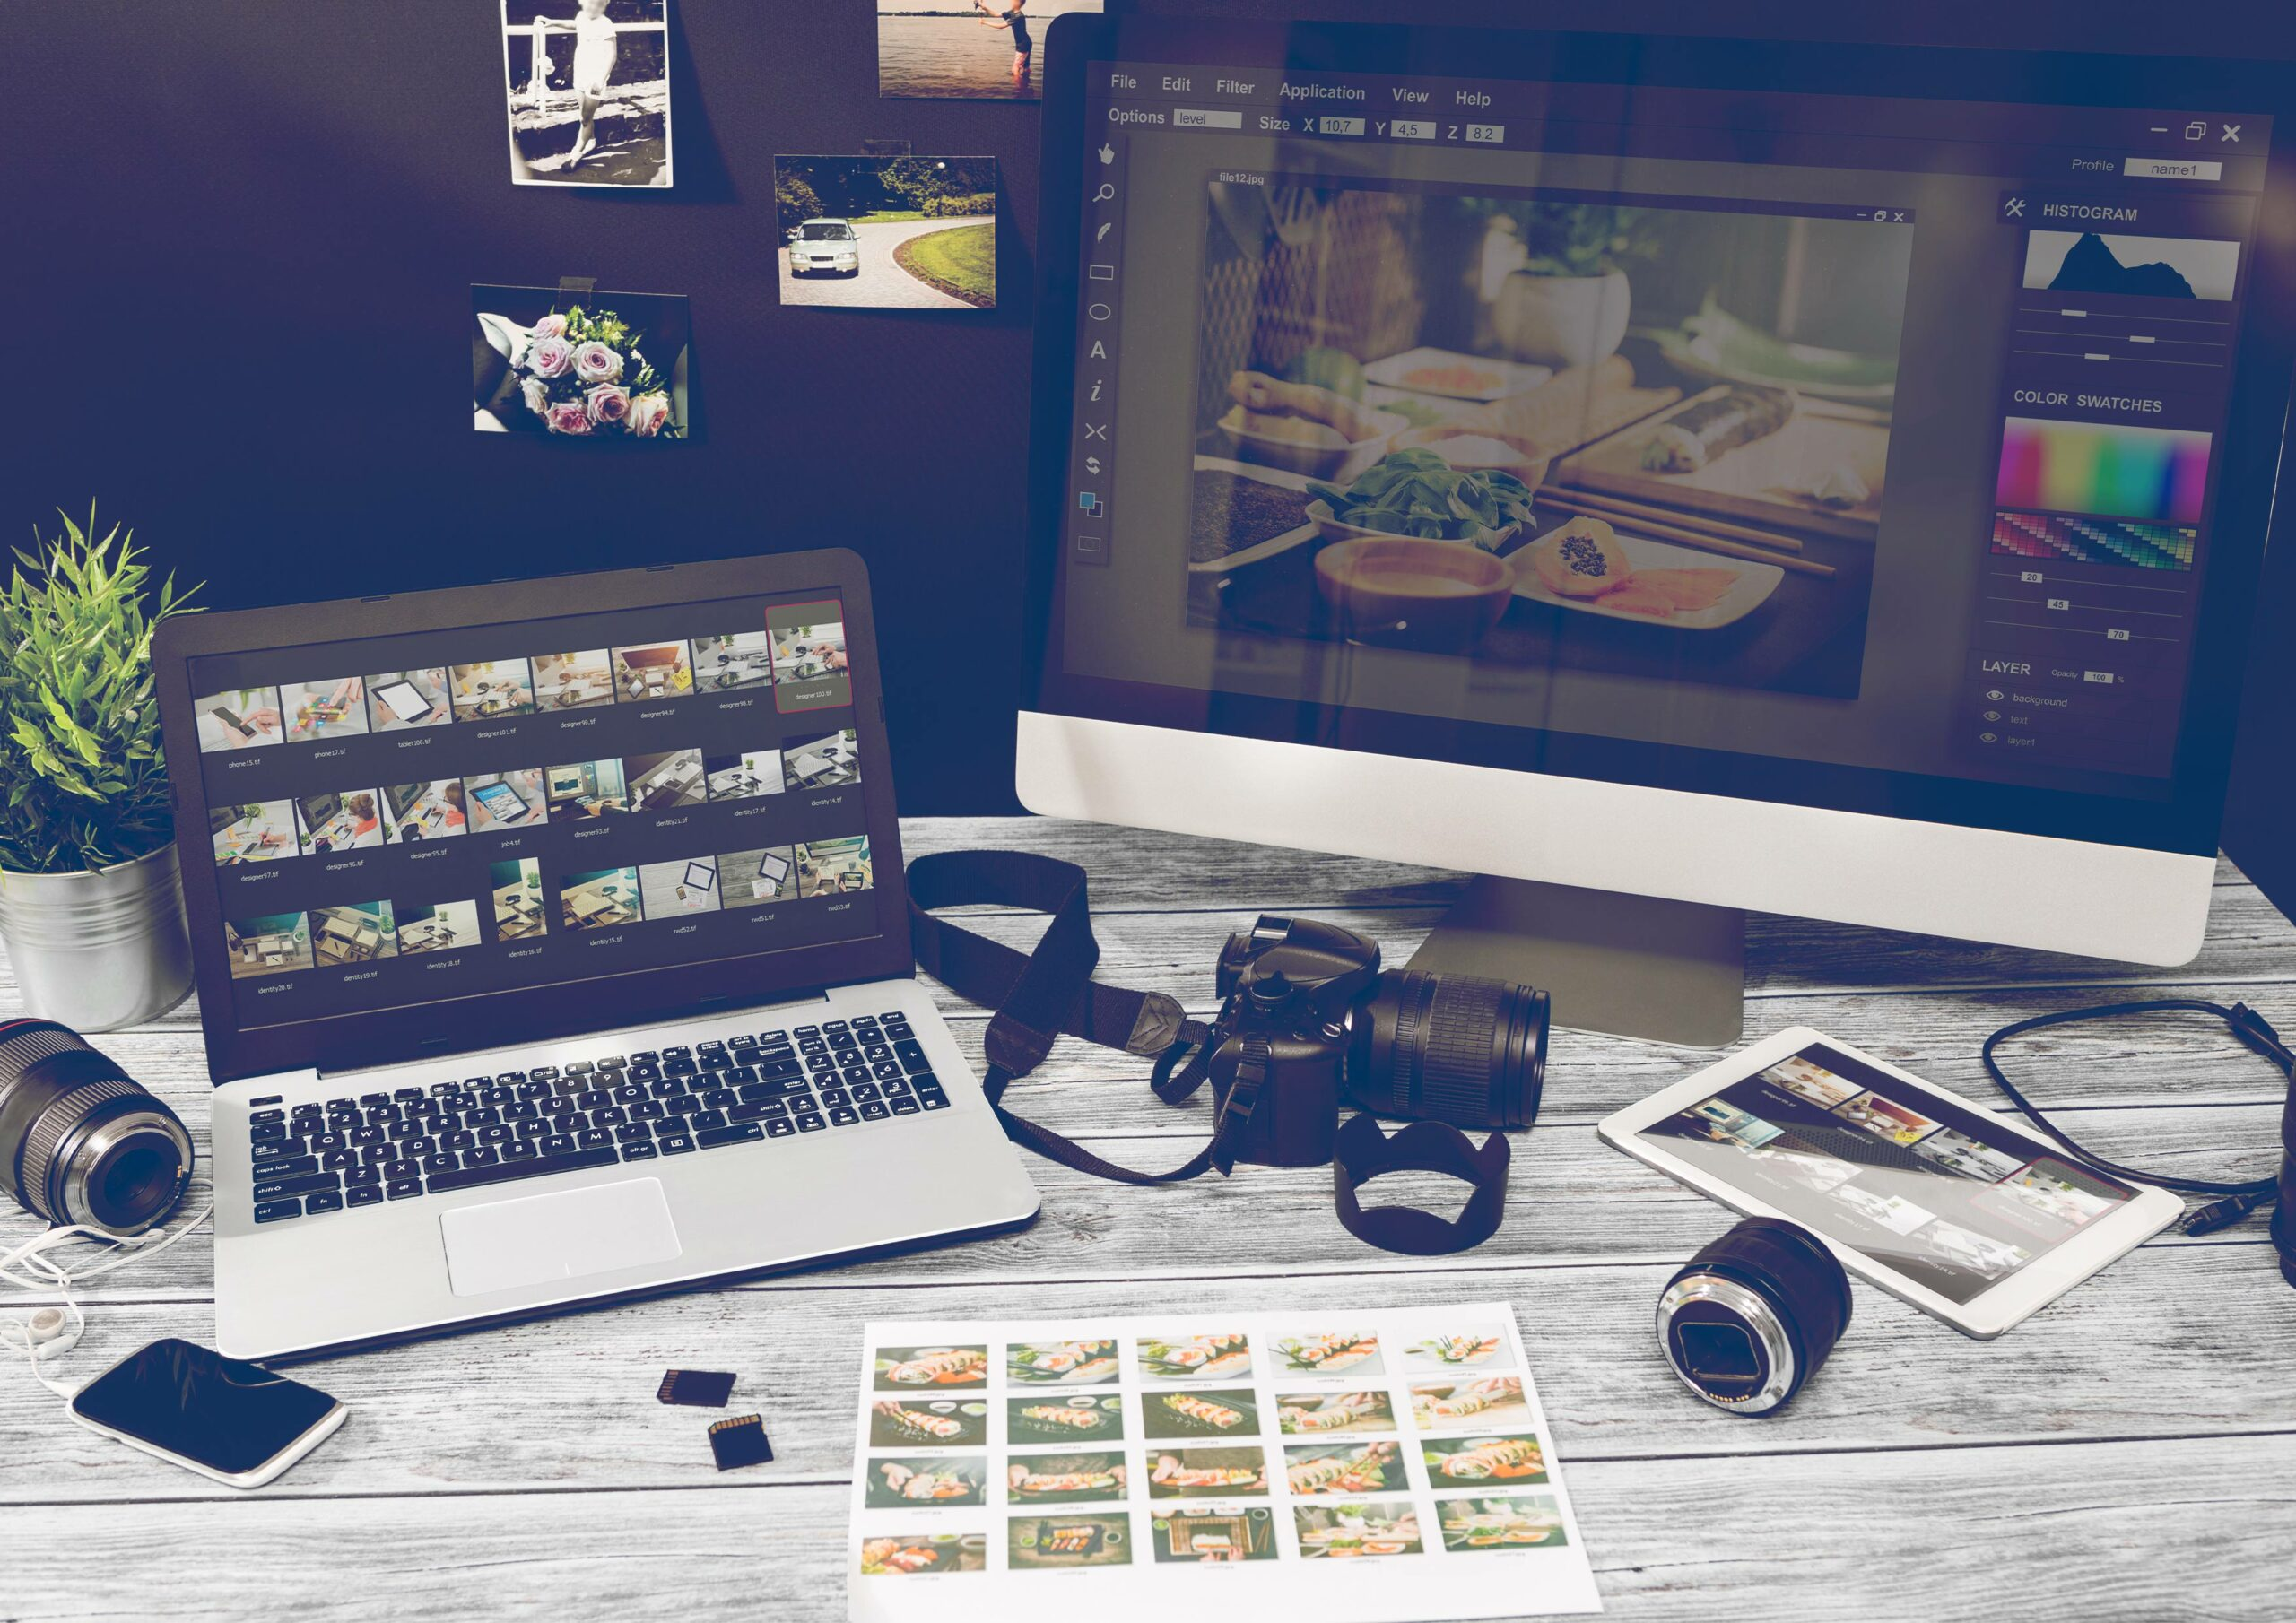 Certified Photo Editor Professional